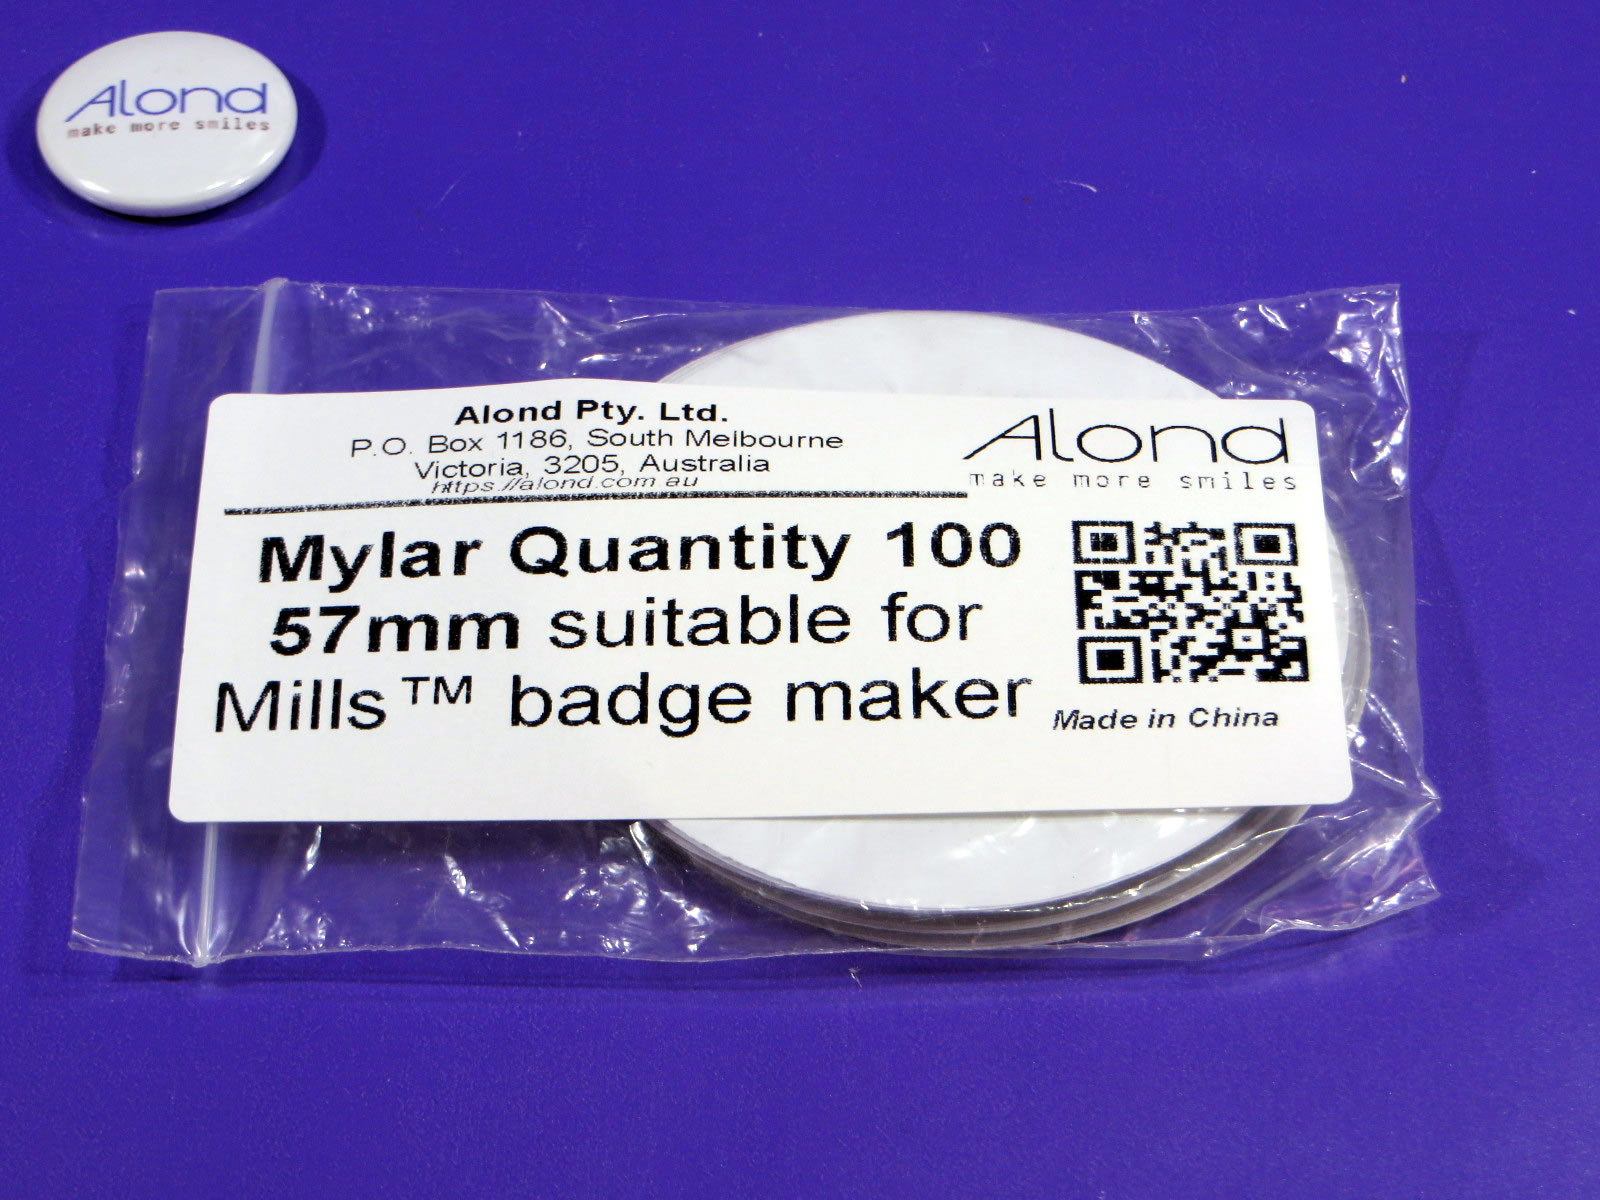 Mills™ 57mm compatible Mylar pack of 100